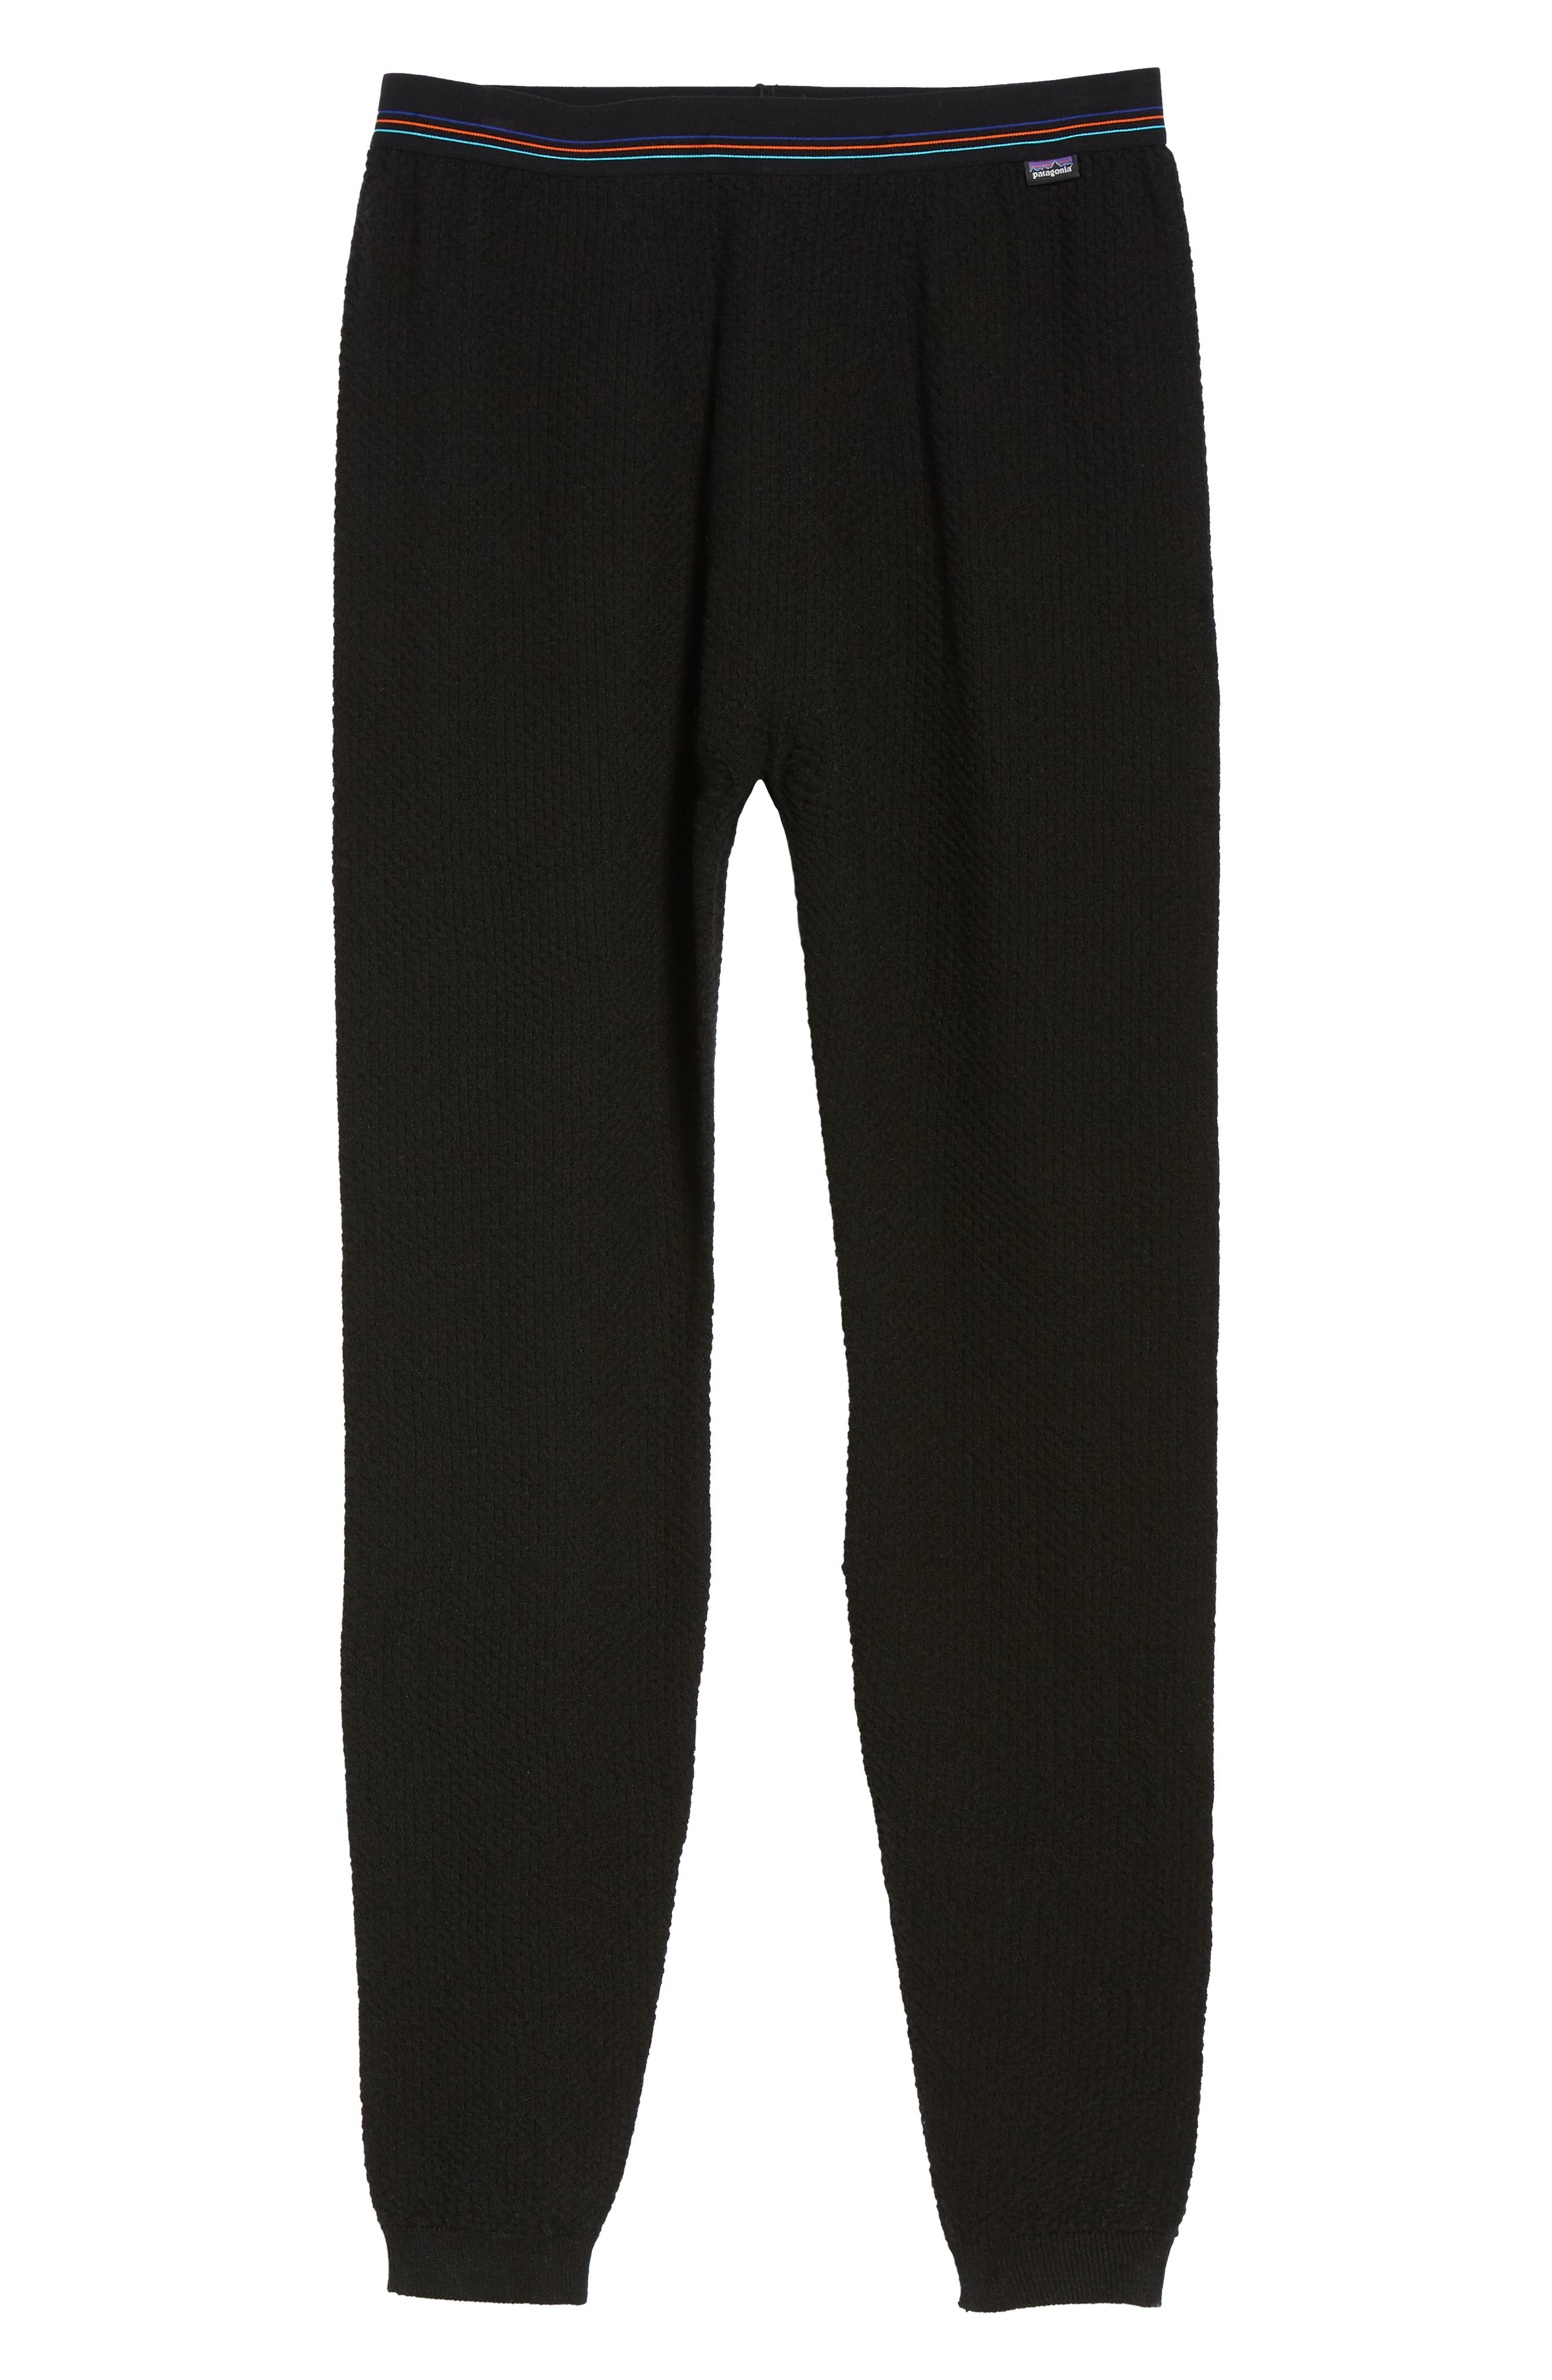 Capilene<sup>®</sup> Thermal Weight Base Layer Pants,                             Alternate thumbnail 6, color,                             BLACK